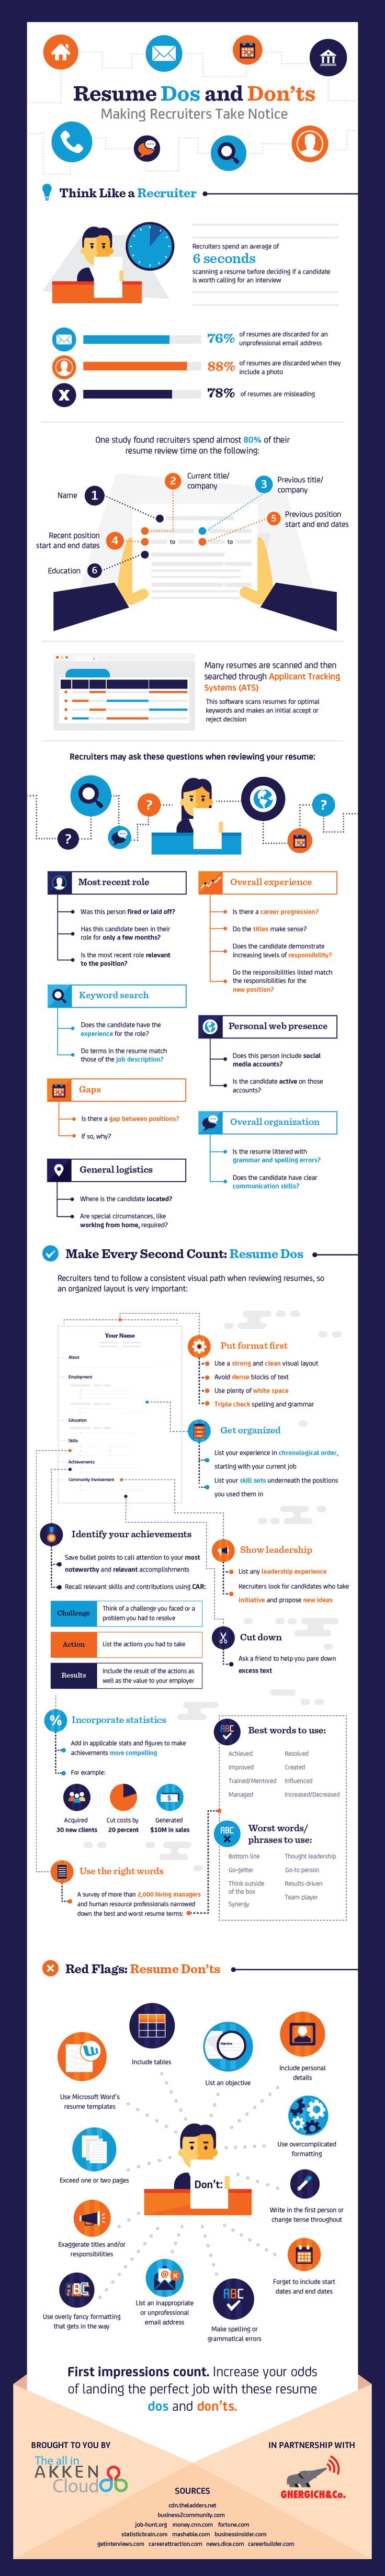 Resume Dos and Don'ts: Making Recruiters Take Notice (Infographic)|iBrandStudio https://vimeo.com/xtremefreelance